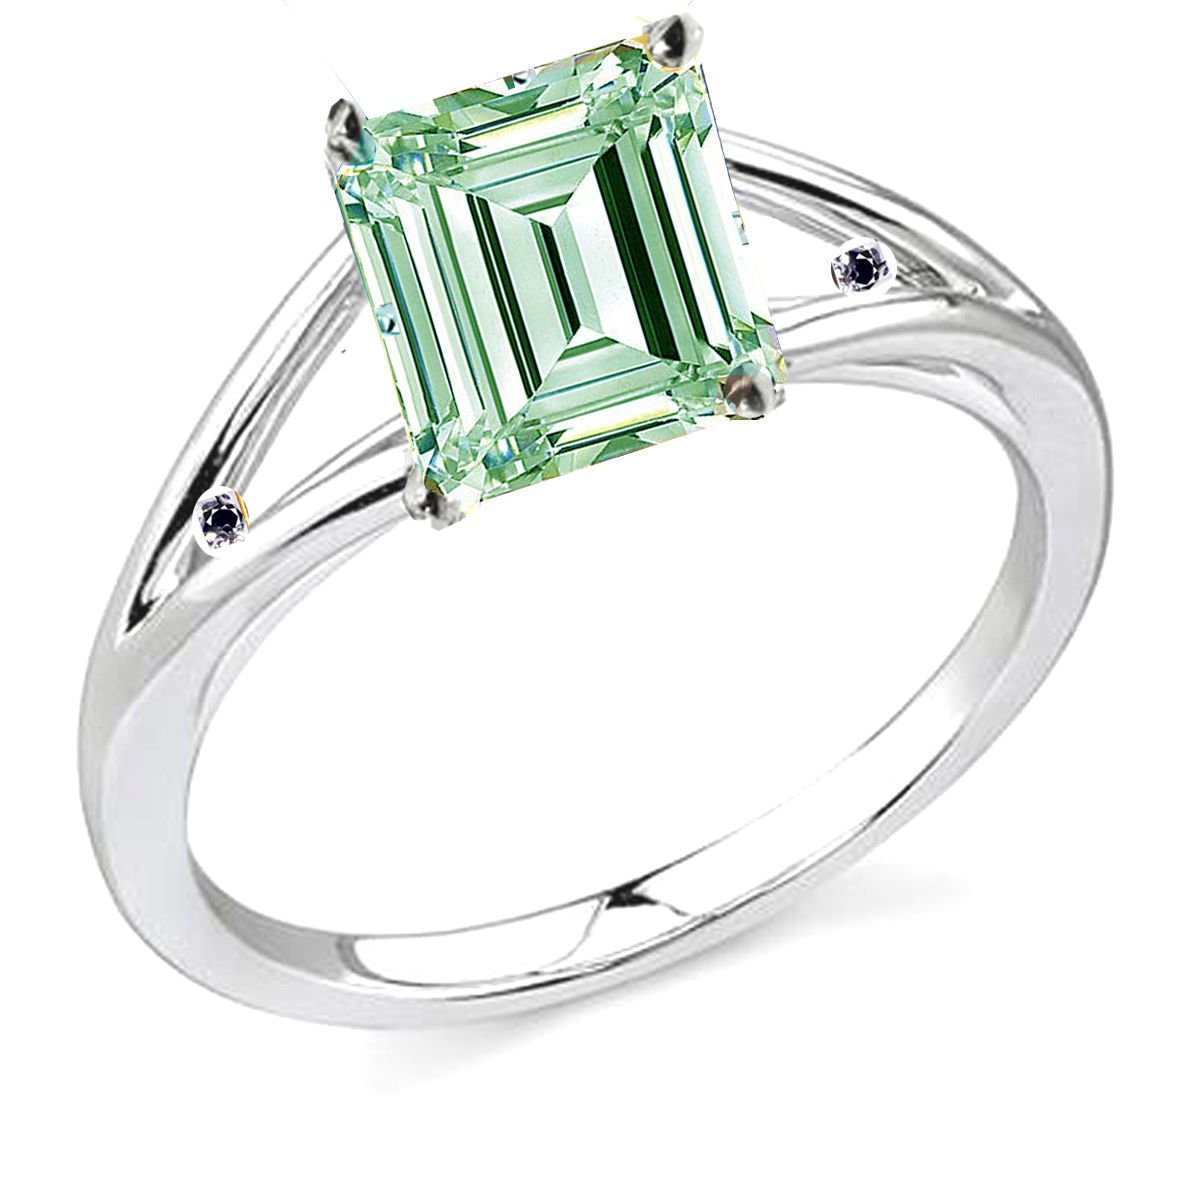 RINGJEWEL 1.37 ct VVS1 Emerald Moissanite Engagement Silver Plated Ring White Green Color Size 7.50